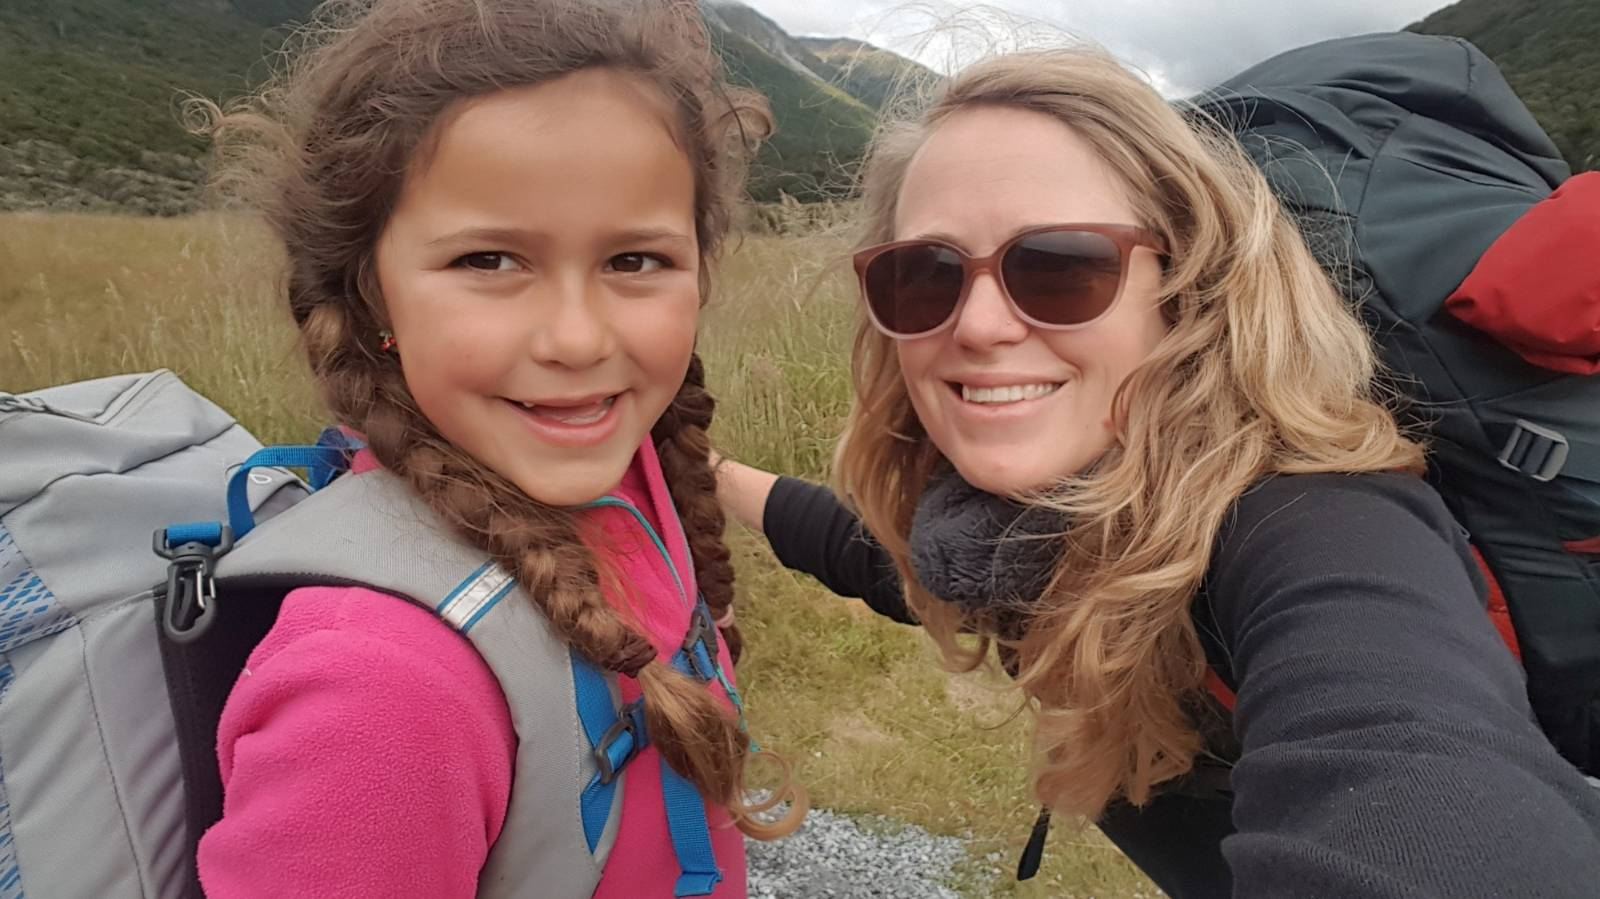 The solo mum finding solace on the trail with her seven-year-old